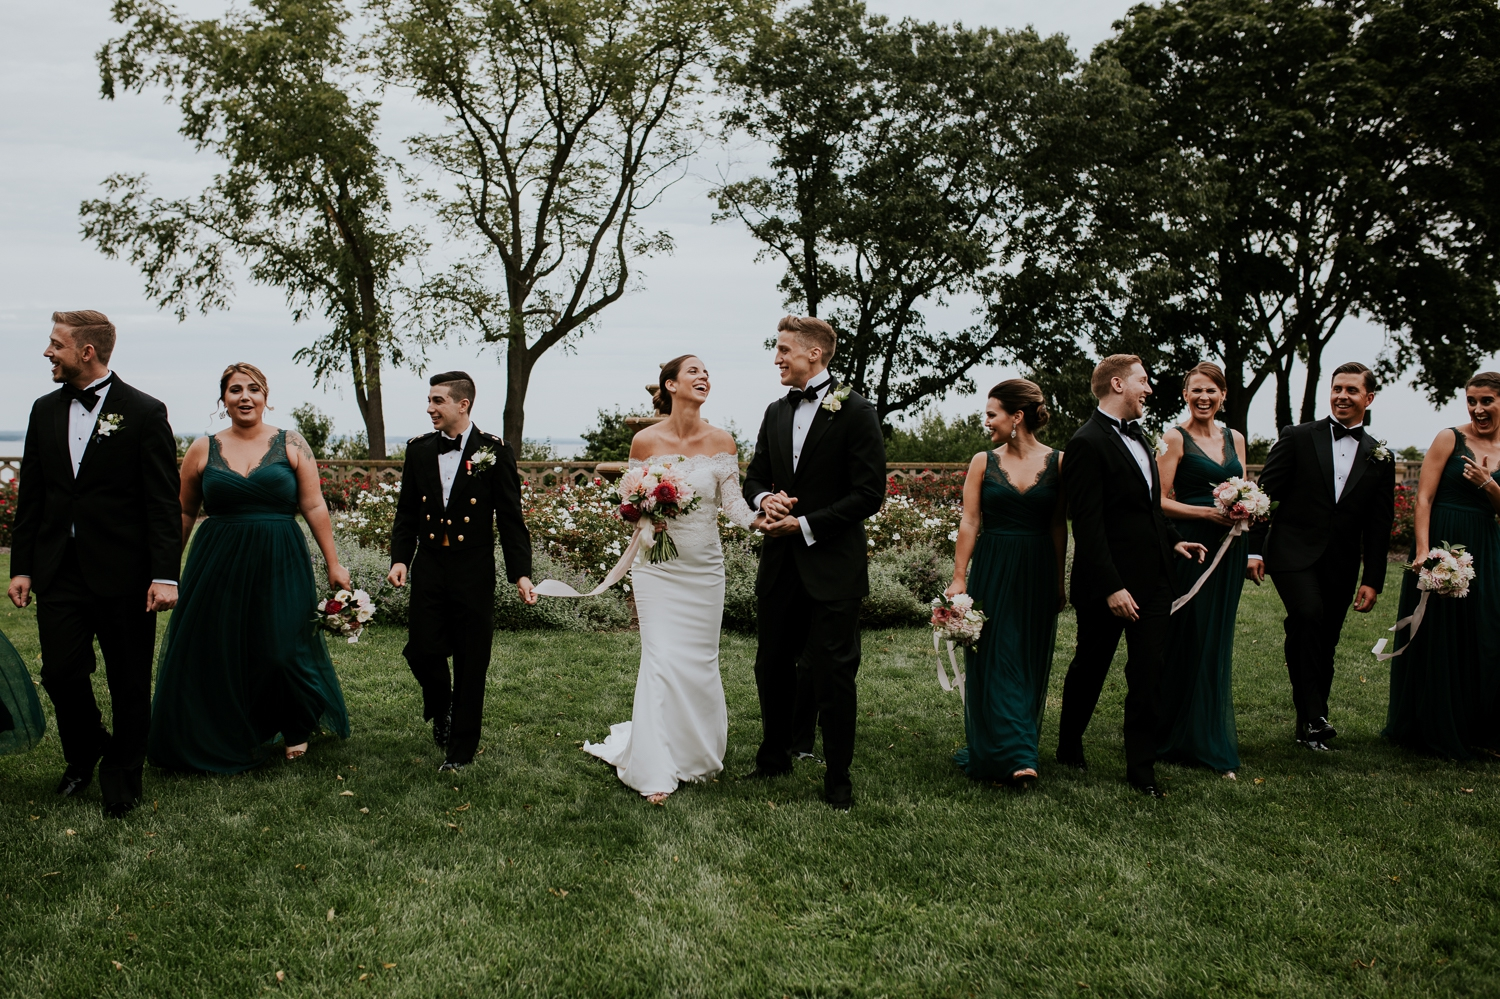 hempstead_house_new_york_wedding_photographer 46.jpg